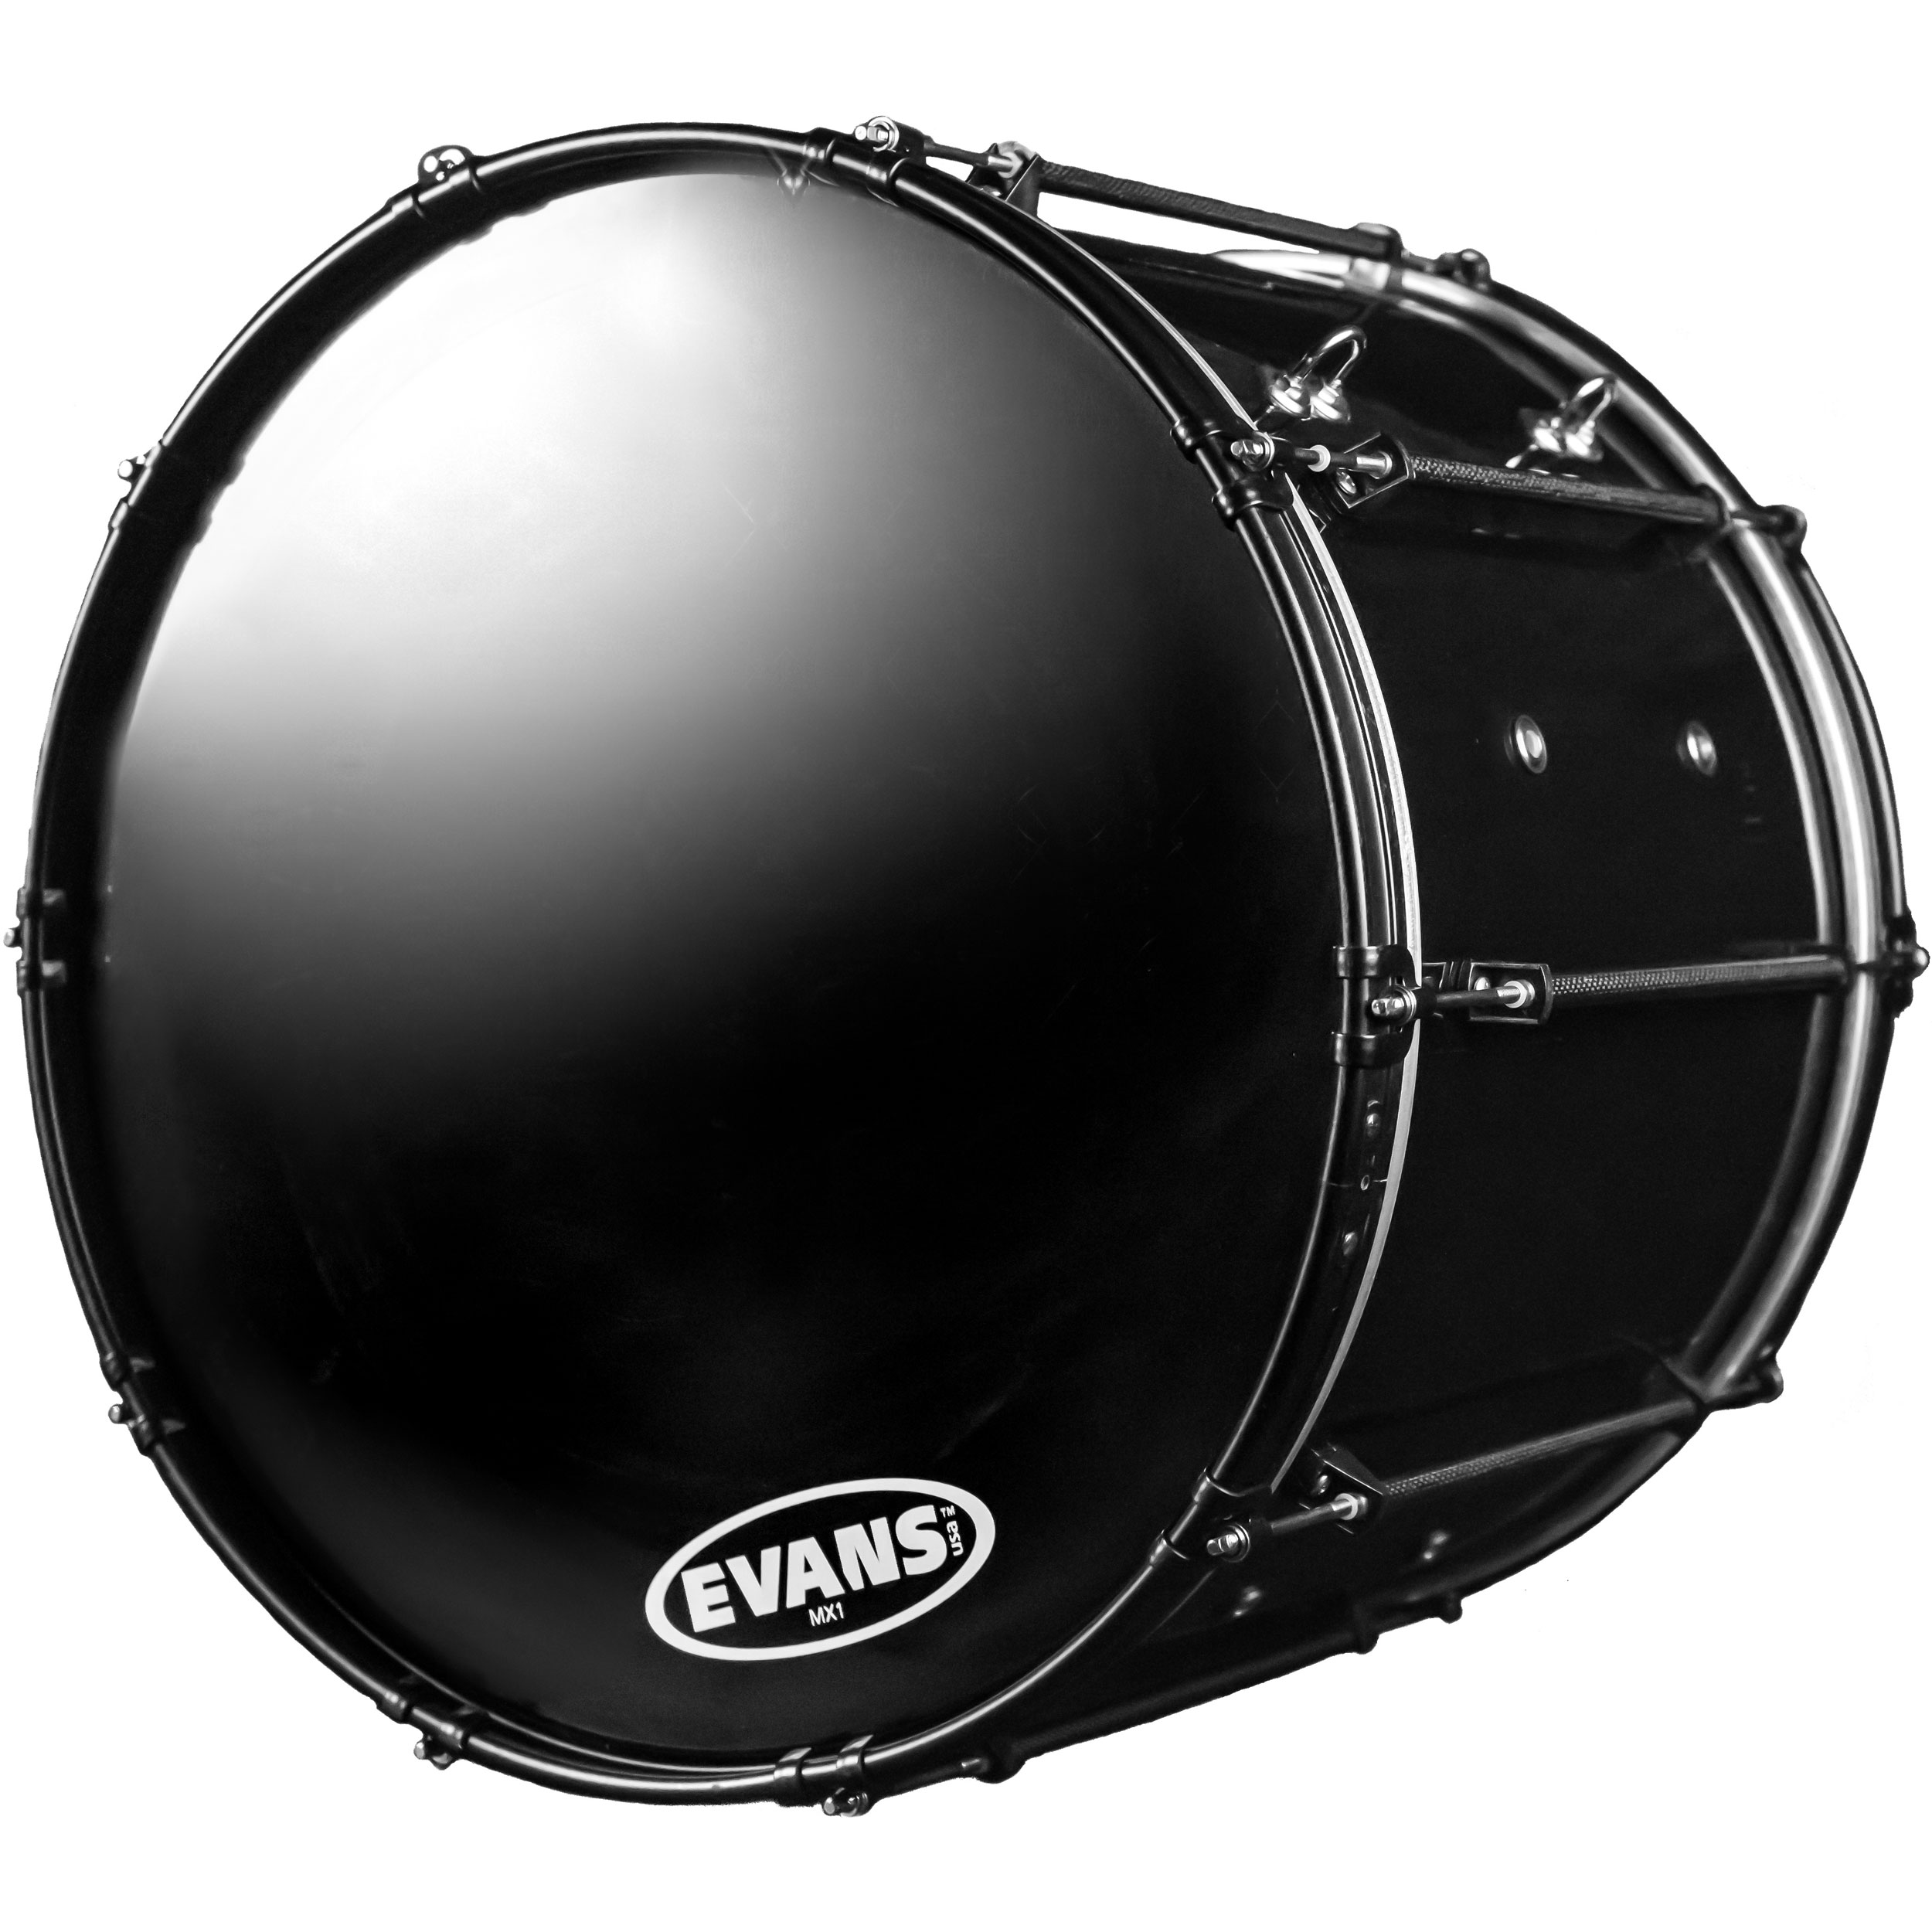 "System Blue 22"" Professional Series Marching Bass Drum"